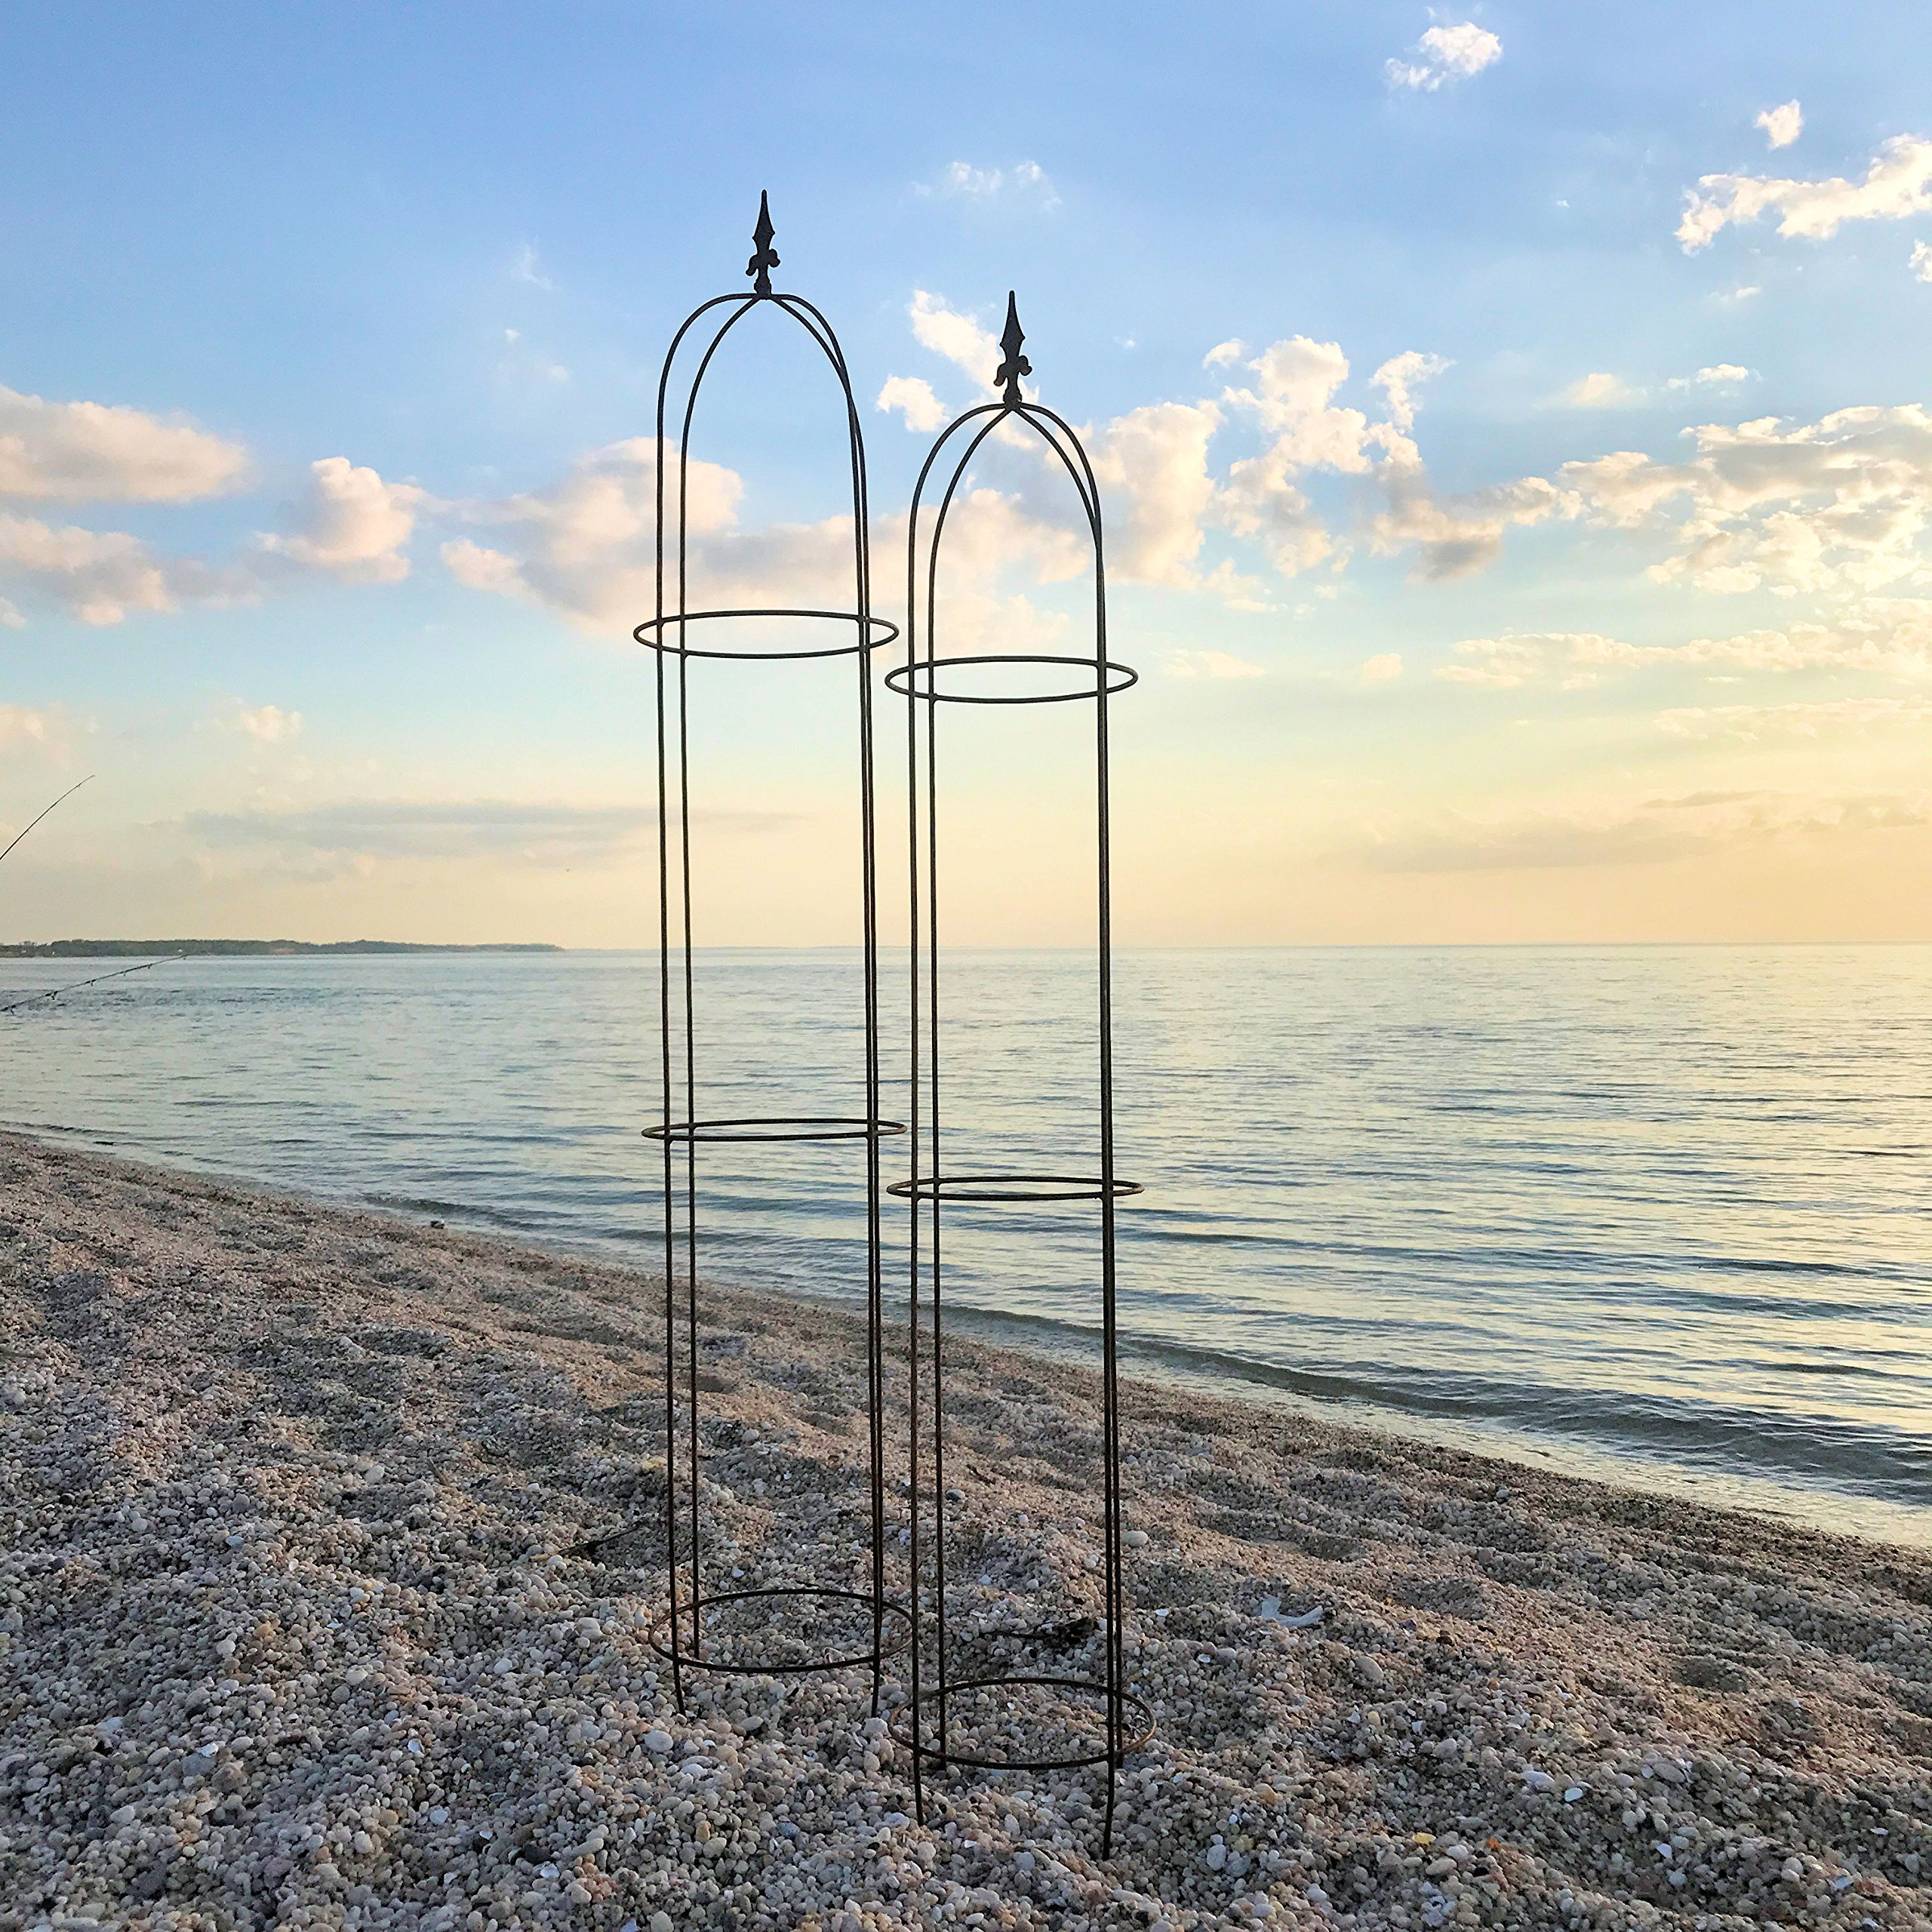 The French Country Style Garden Trellises, Set of 2, for Plants, Climbing Flowers and Vines, Rusty Heirloom Style Finish, Water and Weather Resistant, 5 Ft 11'' and 5 Ft 3'''' Tall, Iron, by'' by Whole House Worlds (Image #2)